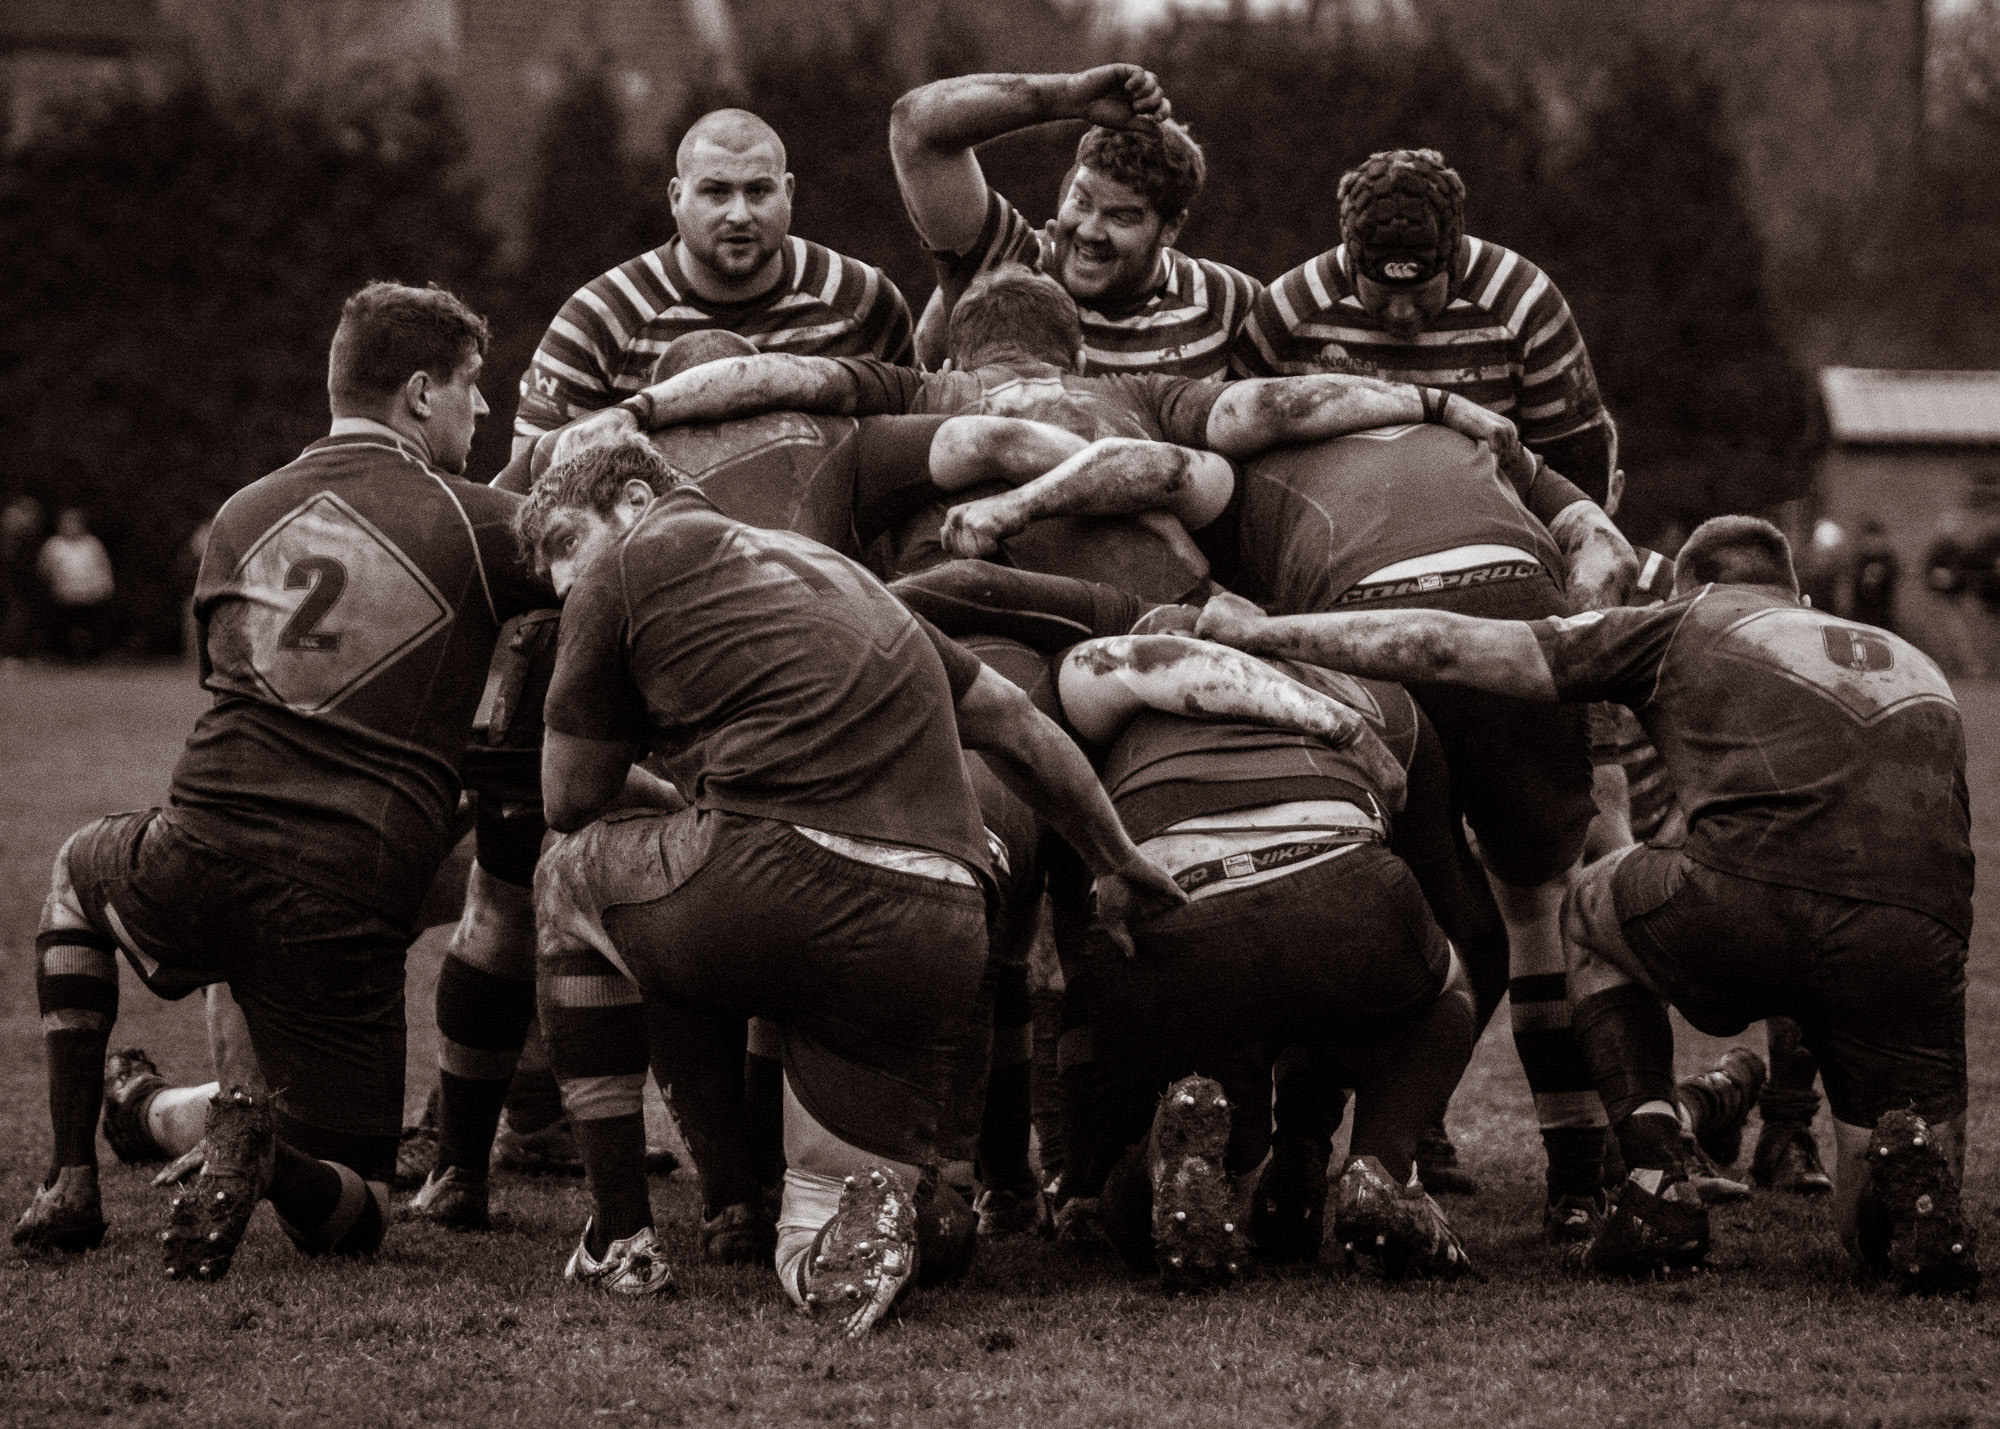 Humour in the scrum